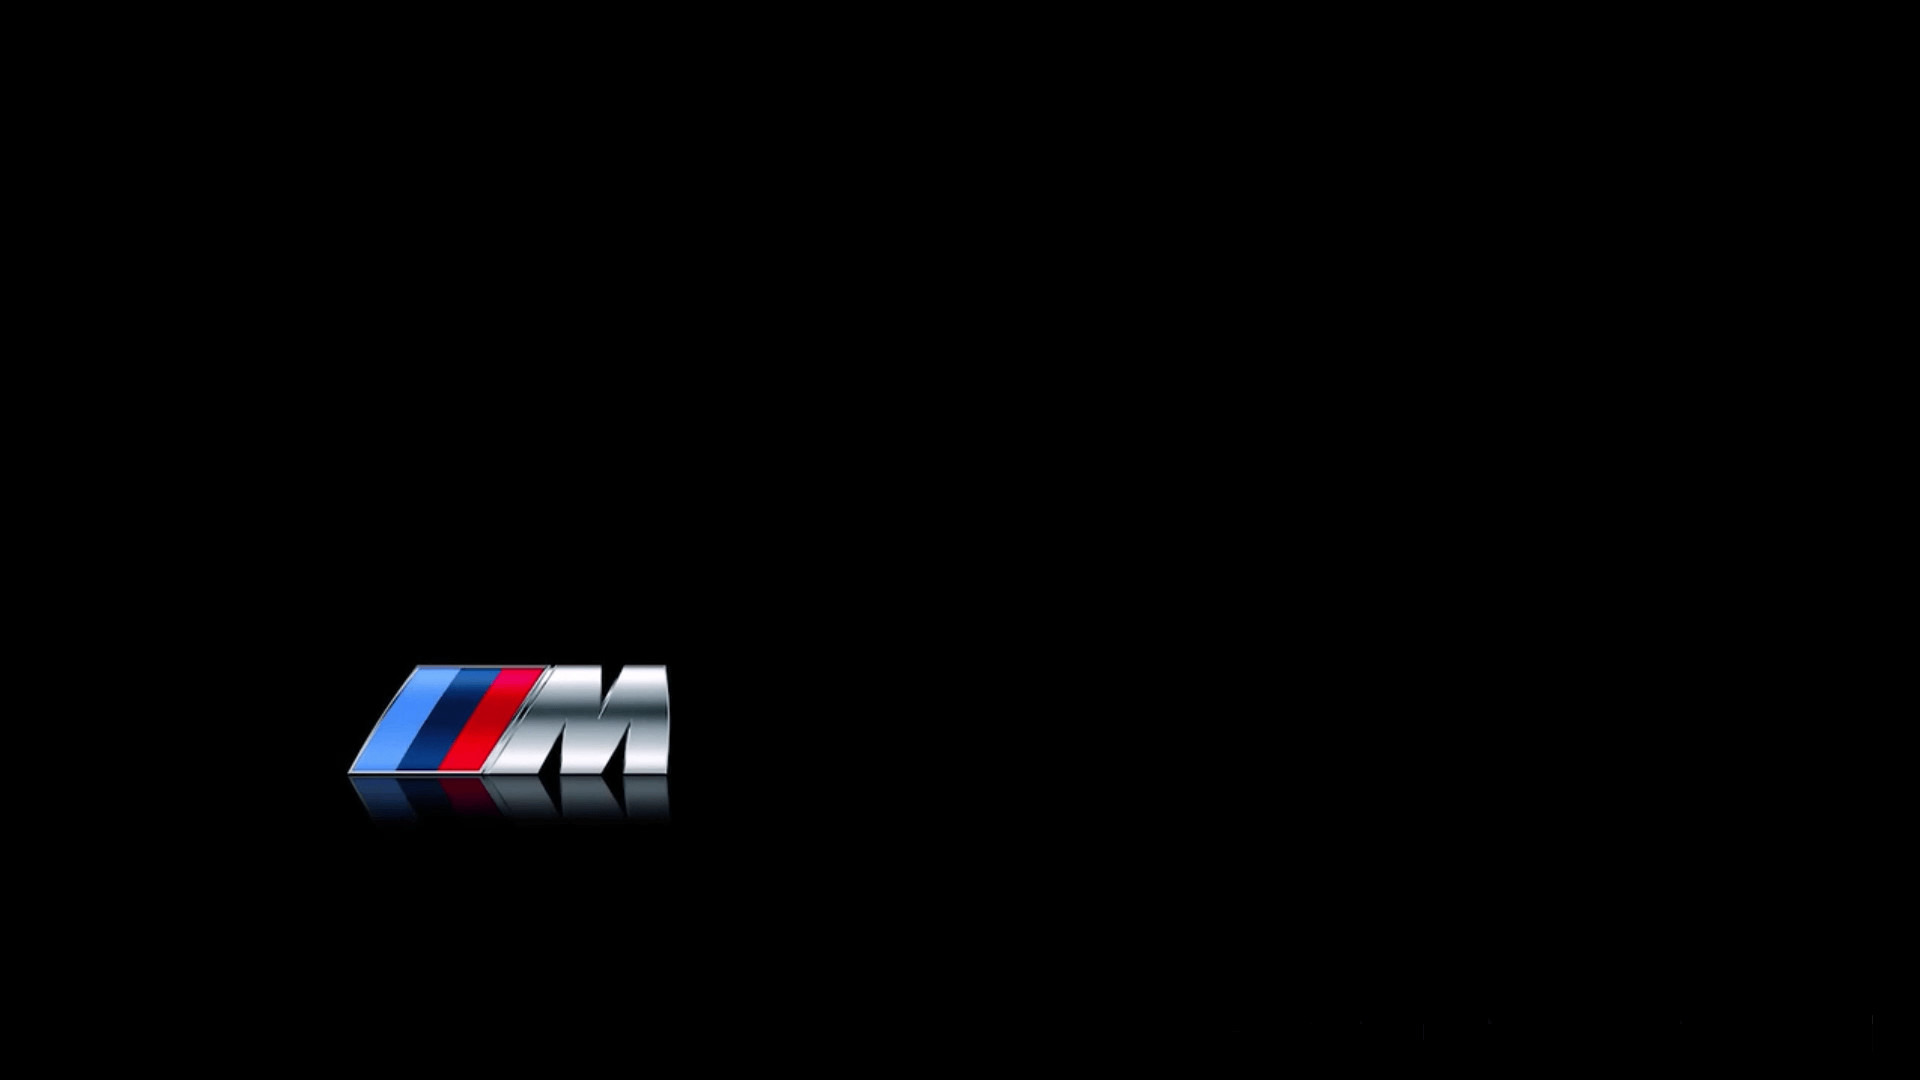 M M Desktop Wallpaper: BMW M HD Wallpaper (57+ Images